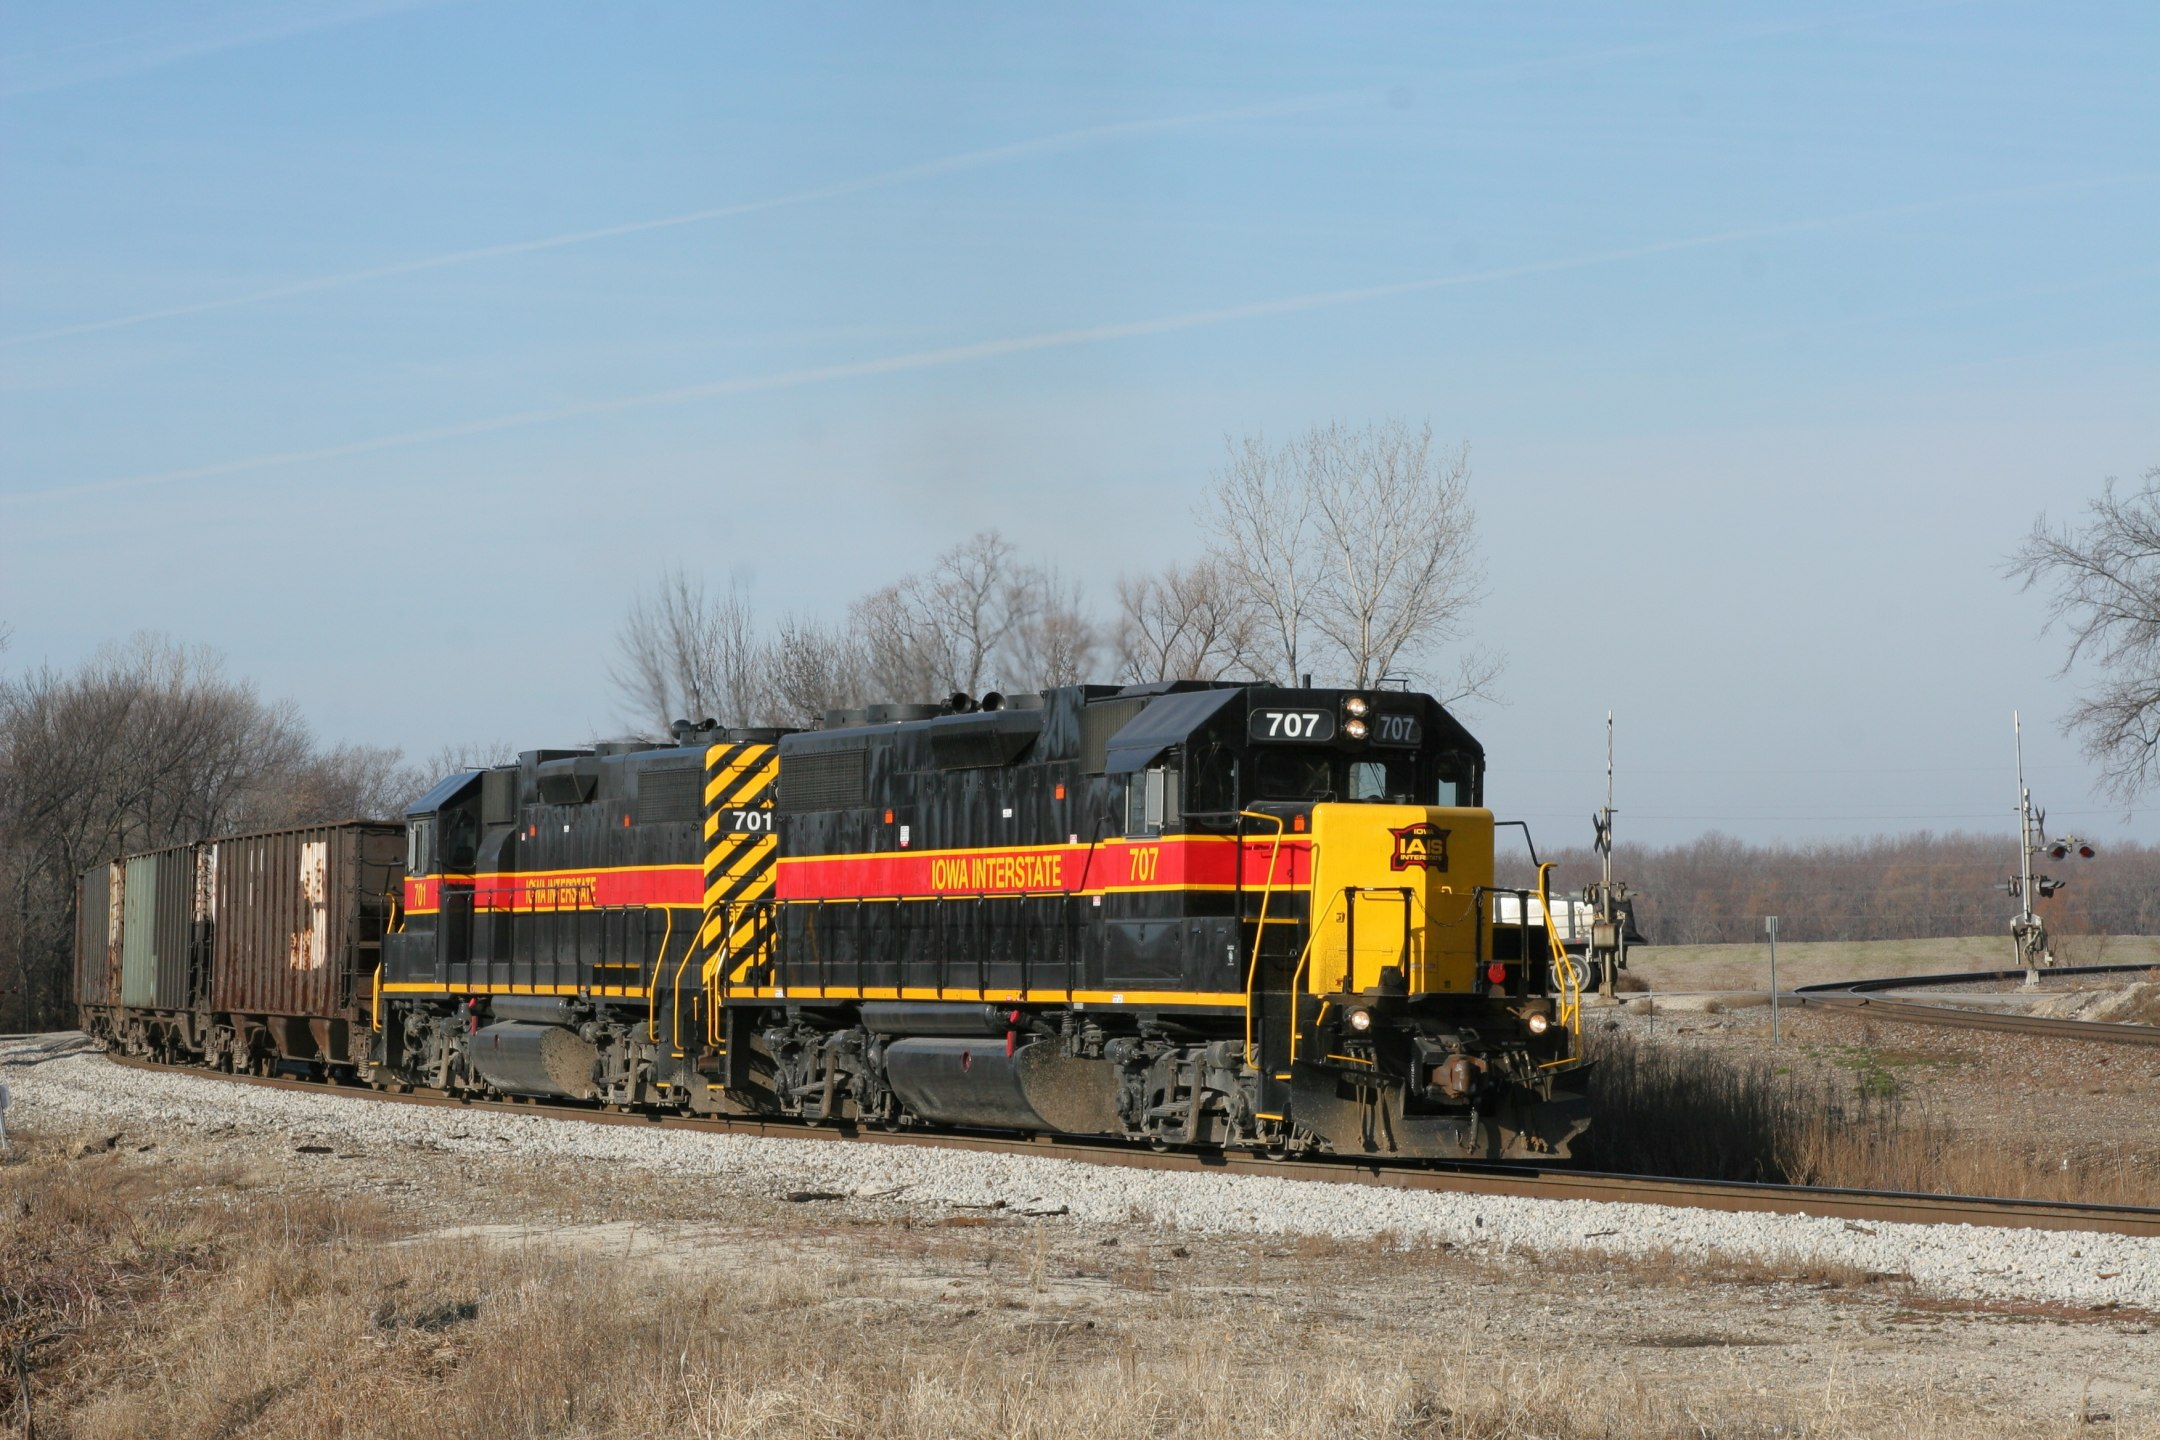 With BNSF 6786 and train clear of the junction, 707/701 get a light through the crossover